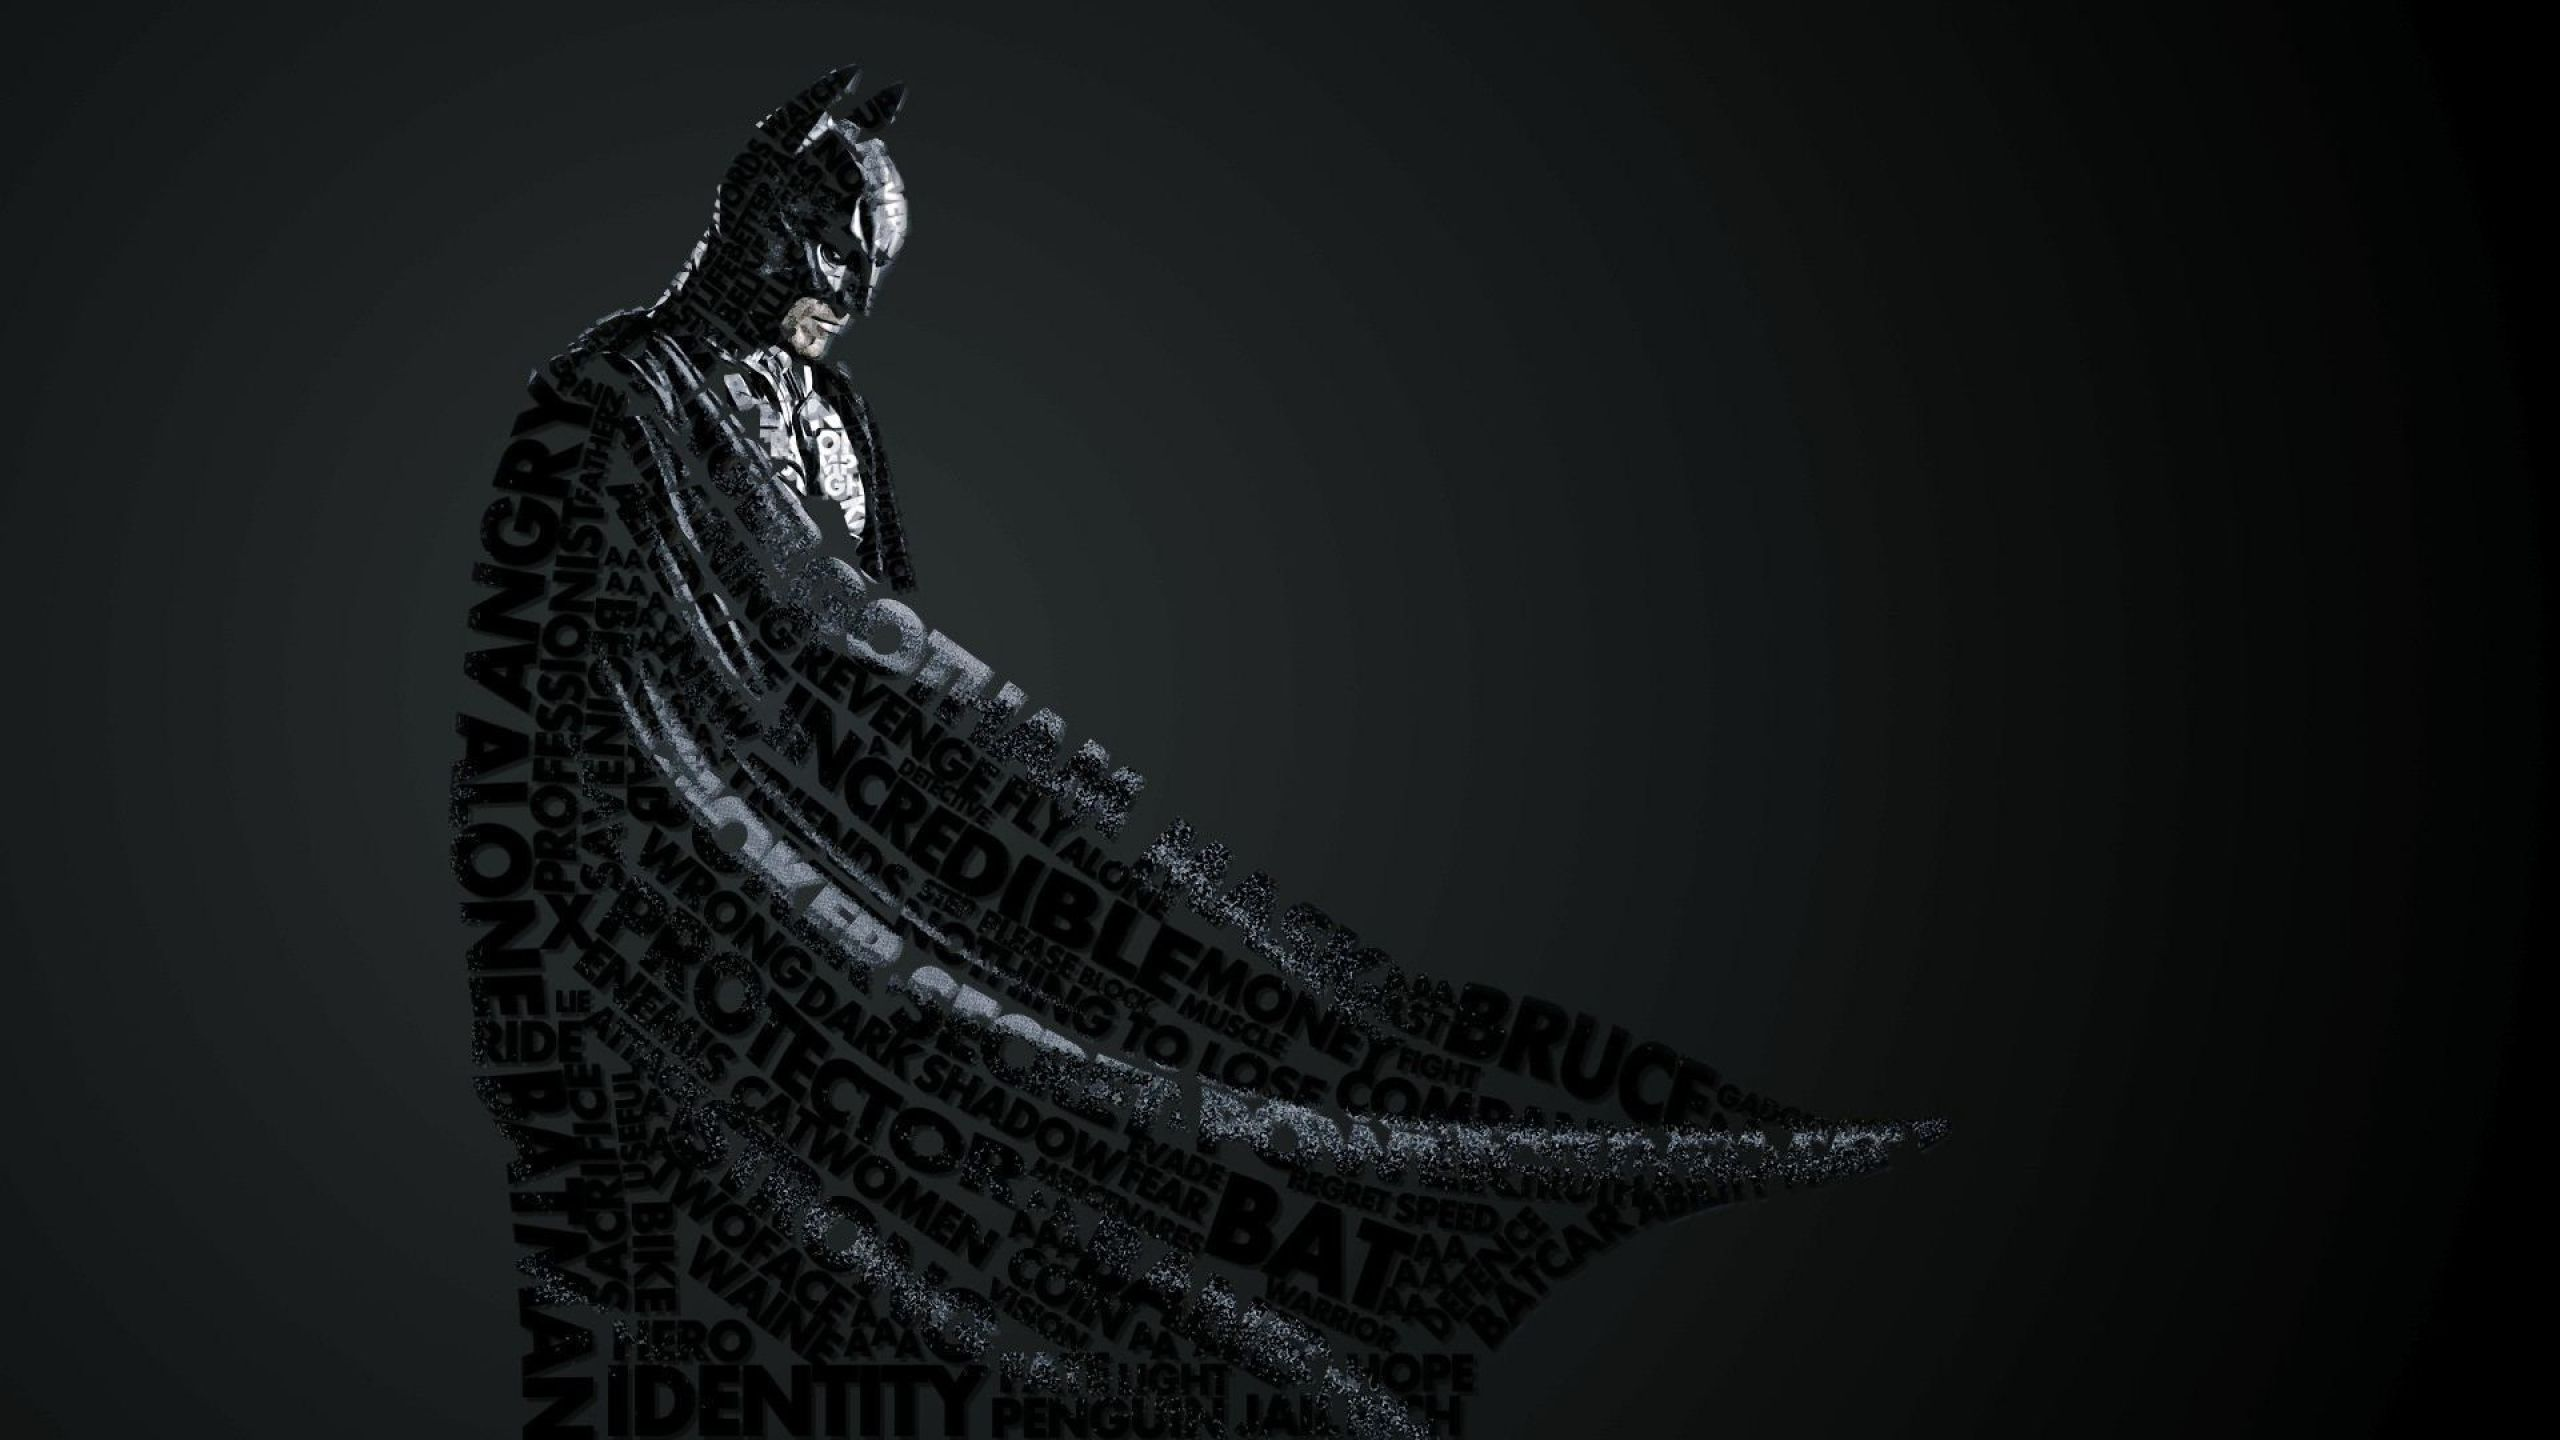 mac imac 27 batman wallpapers hd desktop backgrounds 2560x1440